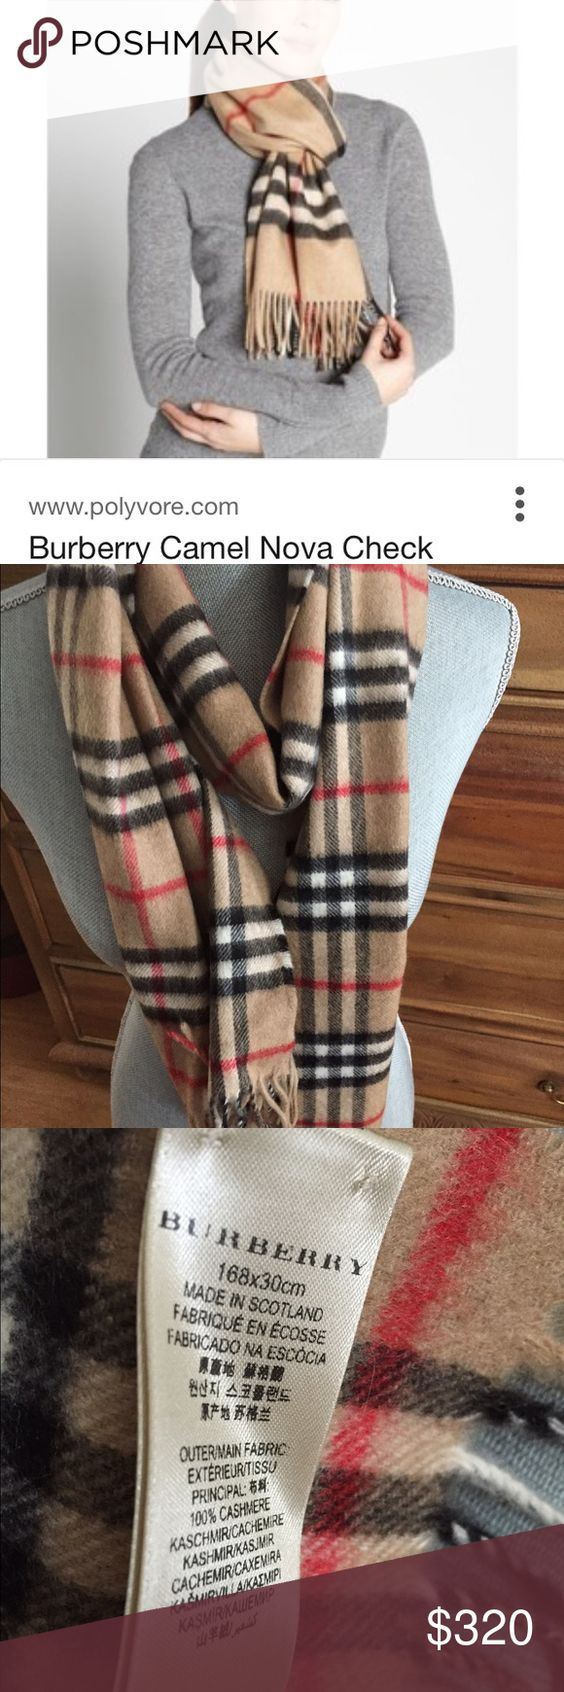 Burberry Cashmere Scarf Burberry cashmere icon check scarf. Camel check with black, white and red plaid. 30x166 cm. excellent condition. Burberry Accessories Scarves & Wraps